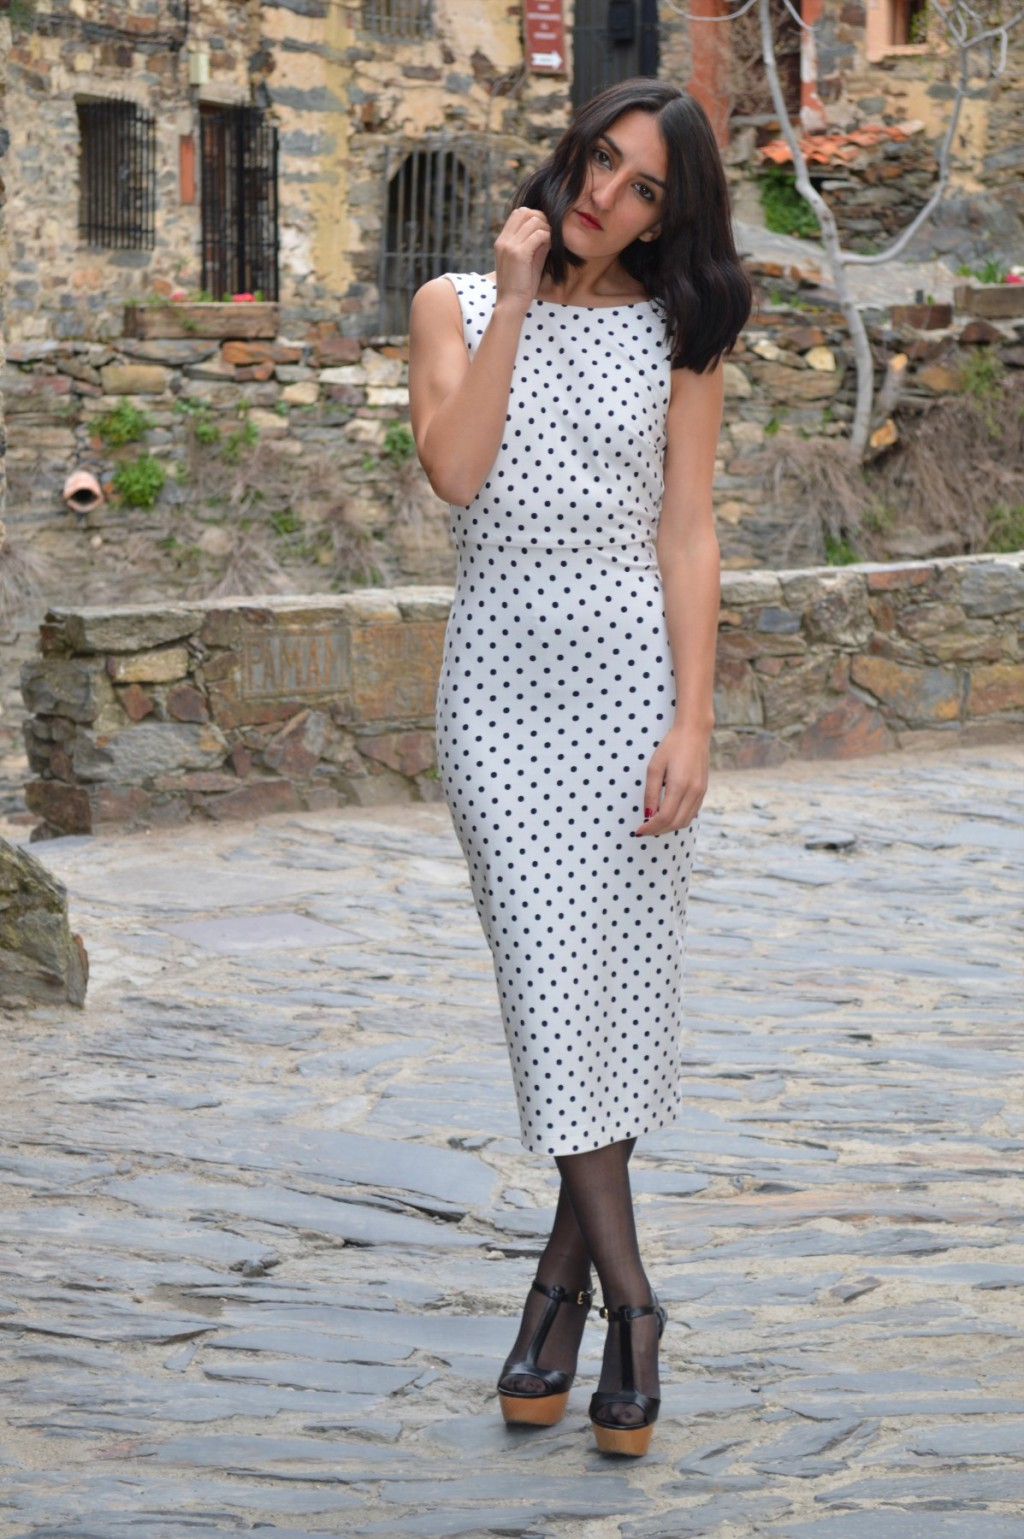 Total look: Zara (New dress, old shoes)